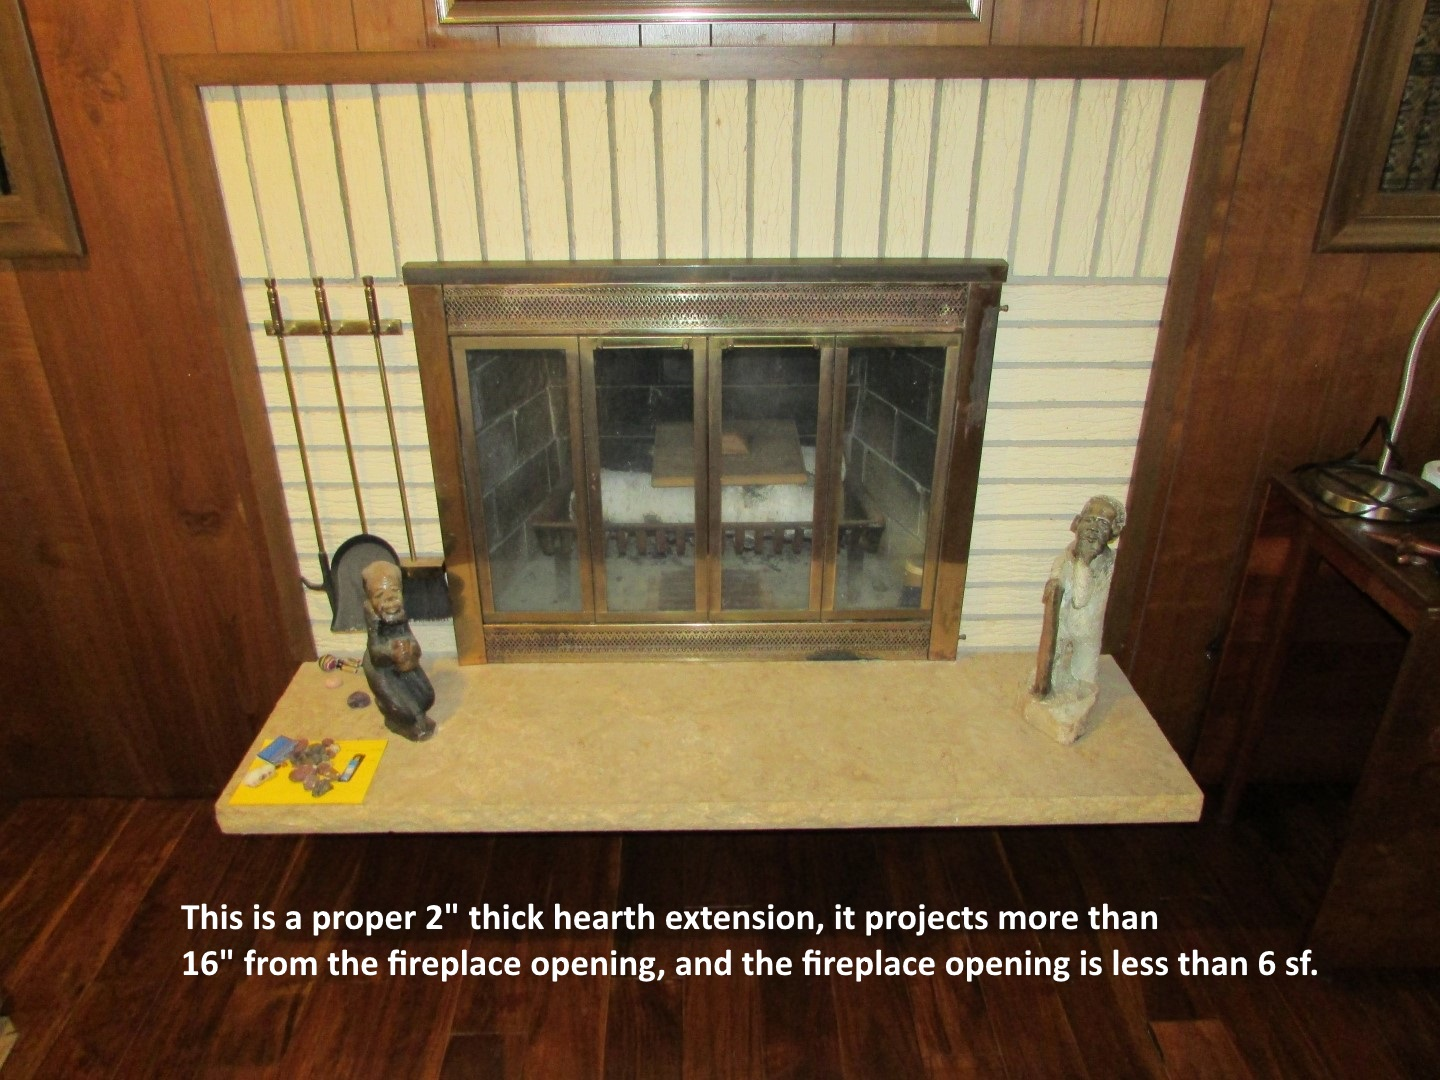 the health inspector fireplace hearth extension rules should not